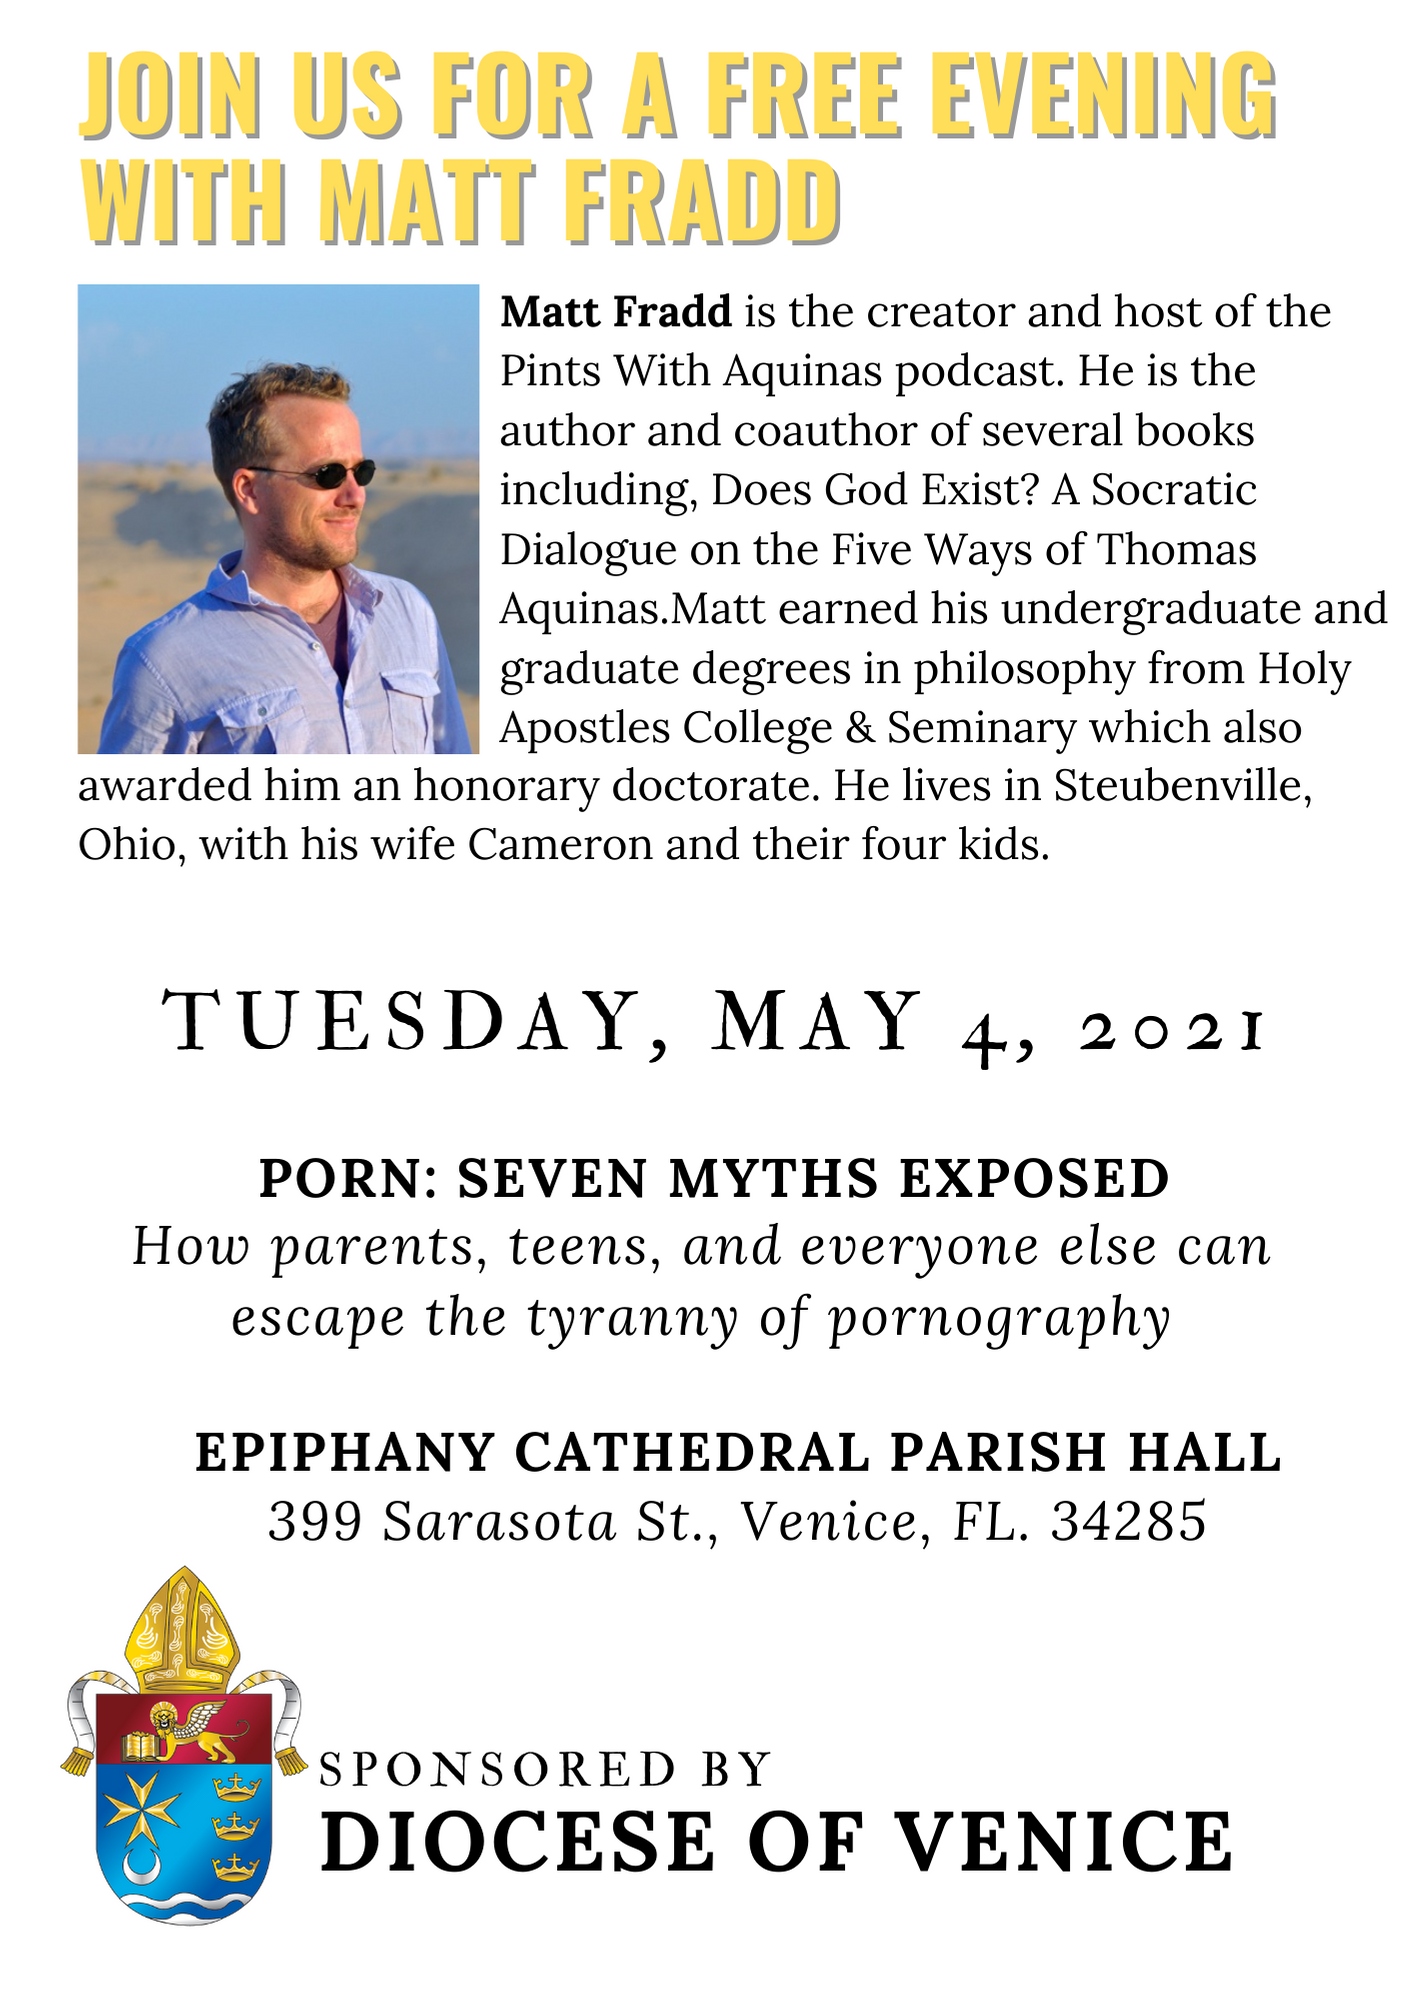 JOIN US FOR A FREE EVENING WITH MATT FRADD ON TUESDAY, MAY 4TH